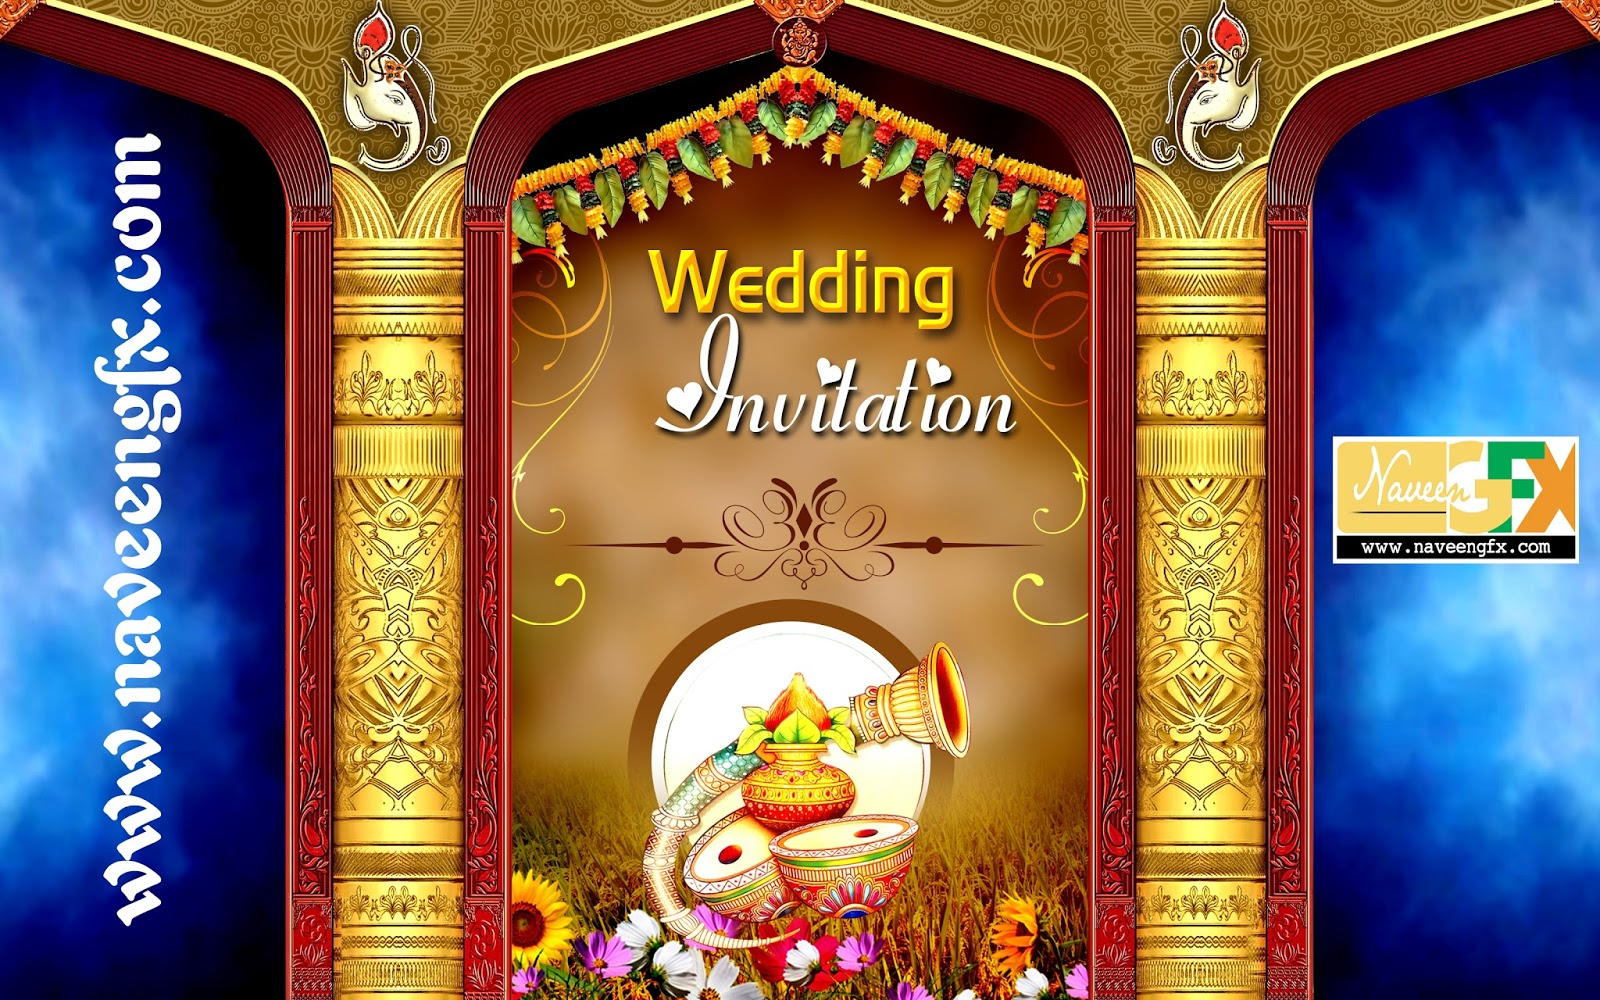 Wedding banners design template free download for photoshop users | naveengfx